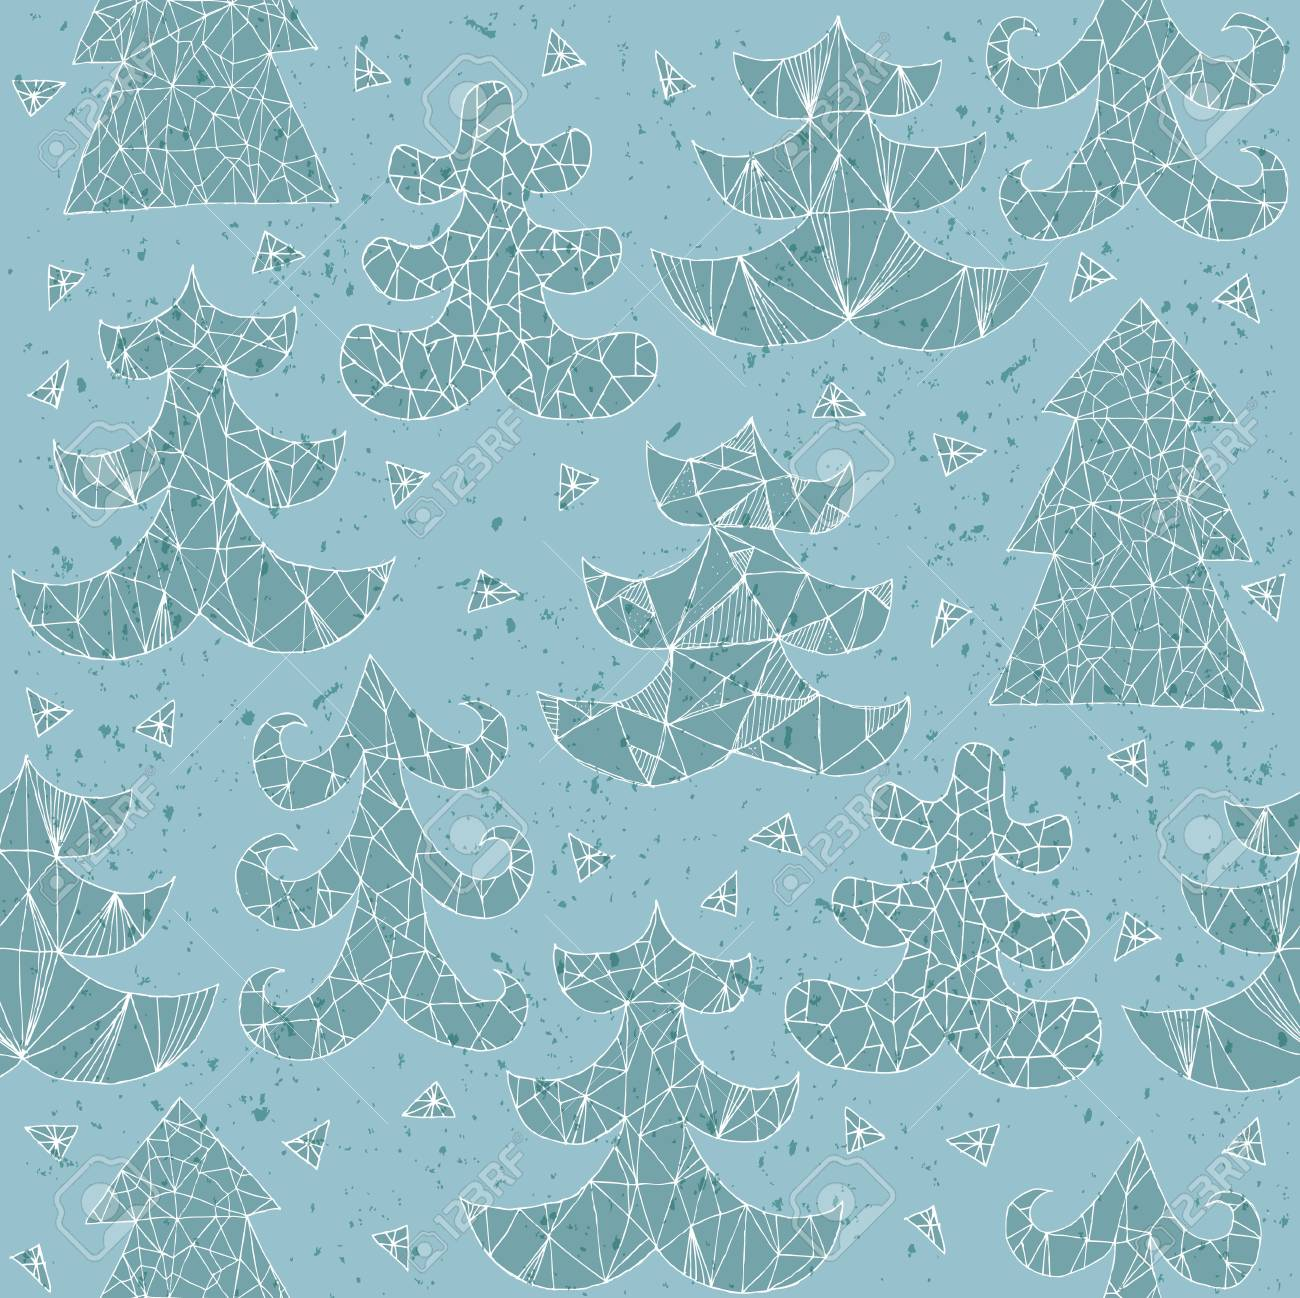 Christmas Trees Greeting Card ... Collection of different trees; seamless repeated pattern ... In blue! Stock Vector - 17142786